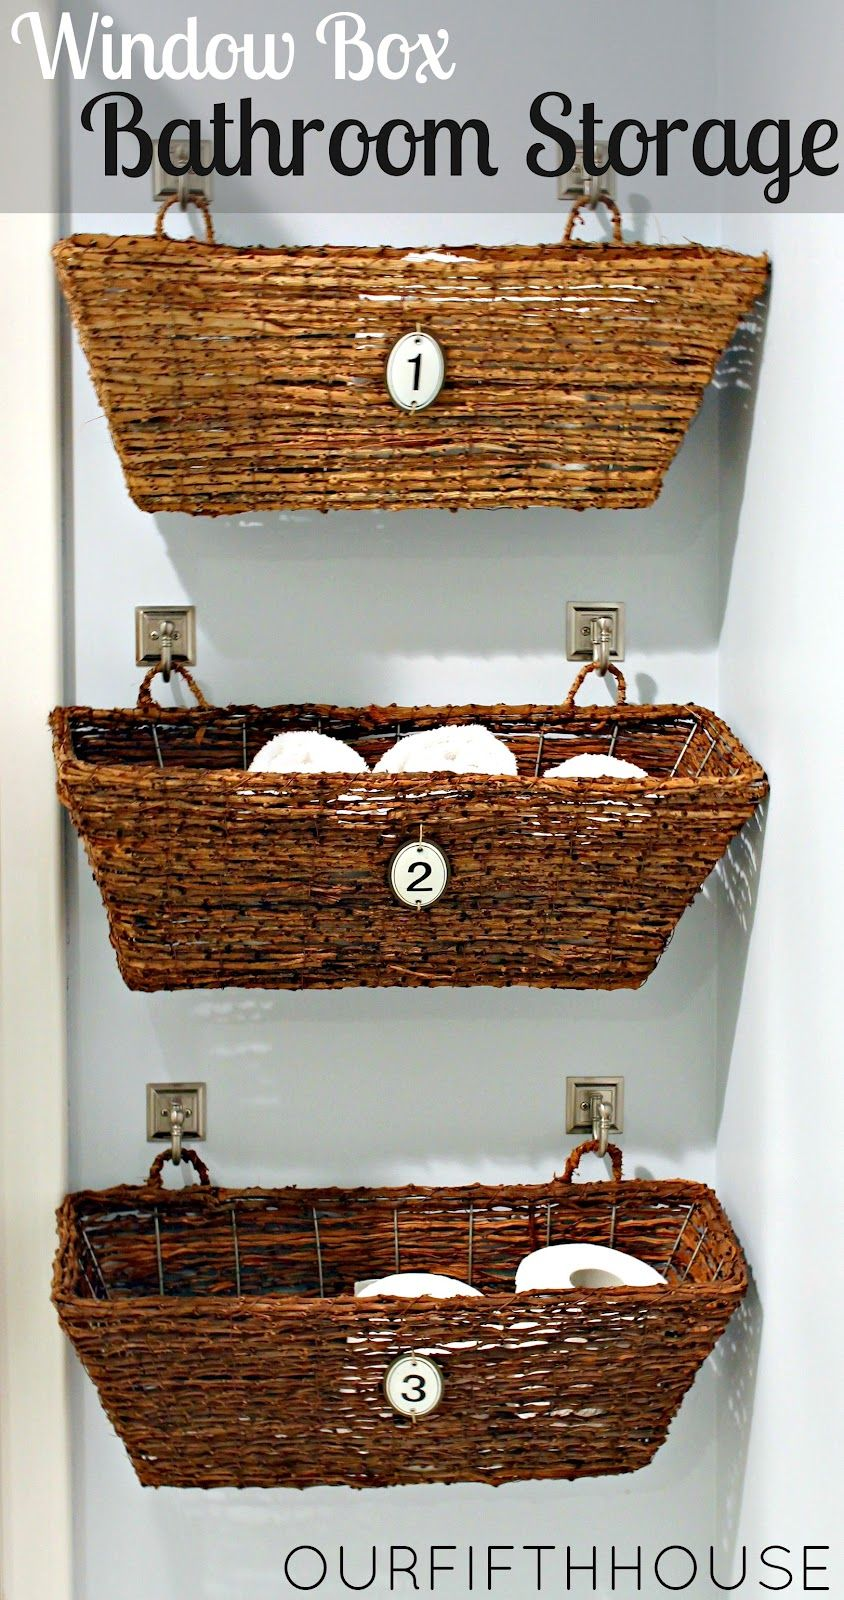 Bathroom wall storage baskets - Bathroom